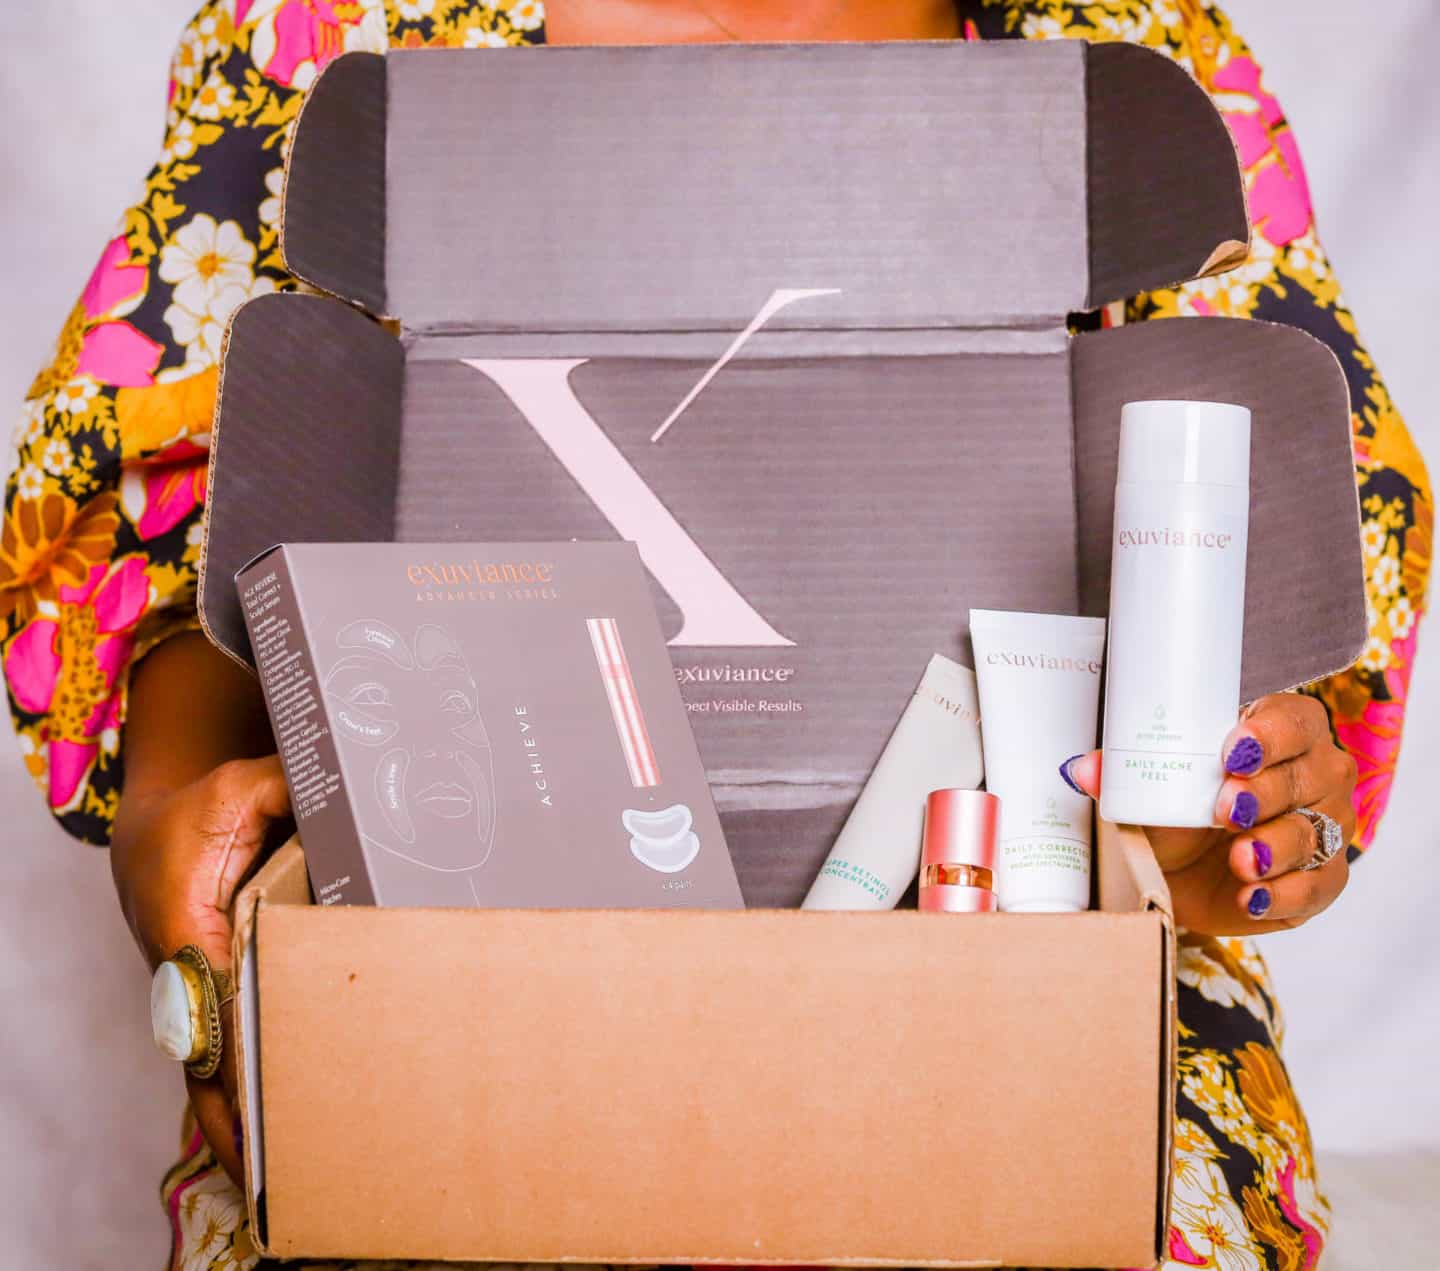 Exuviance Skincare & Ulta Beauty Love Your Skin Giveaway